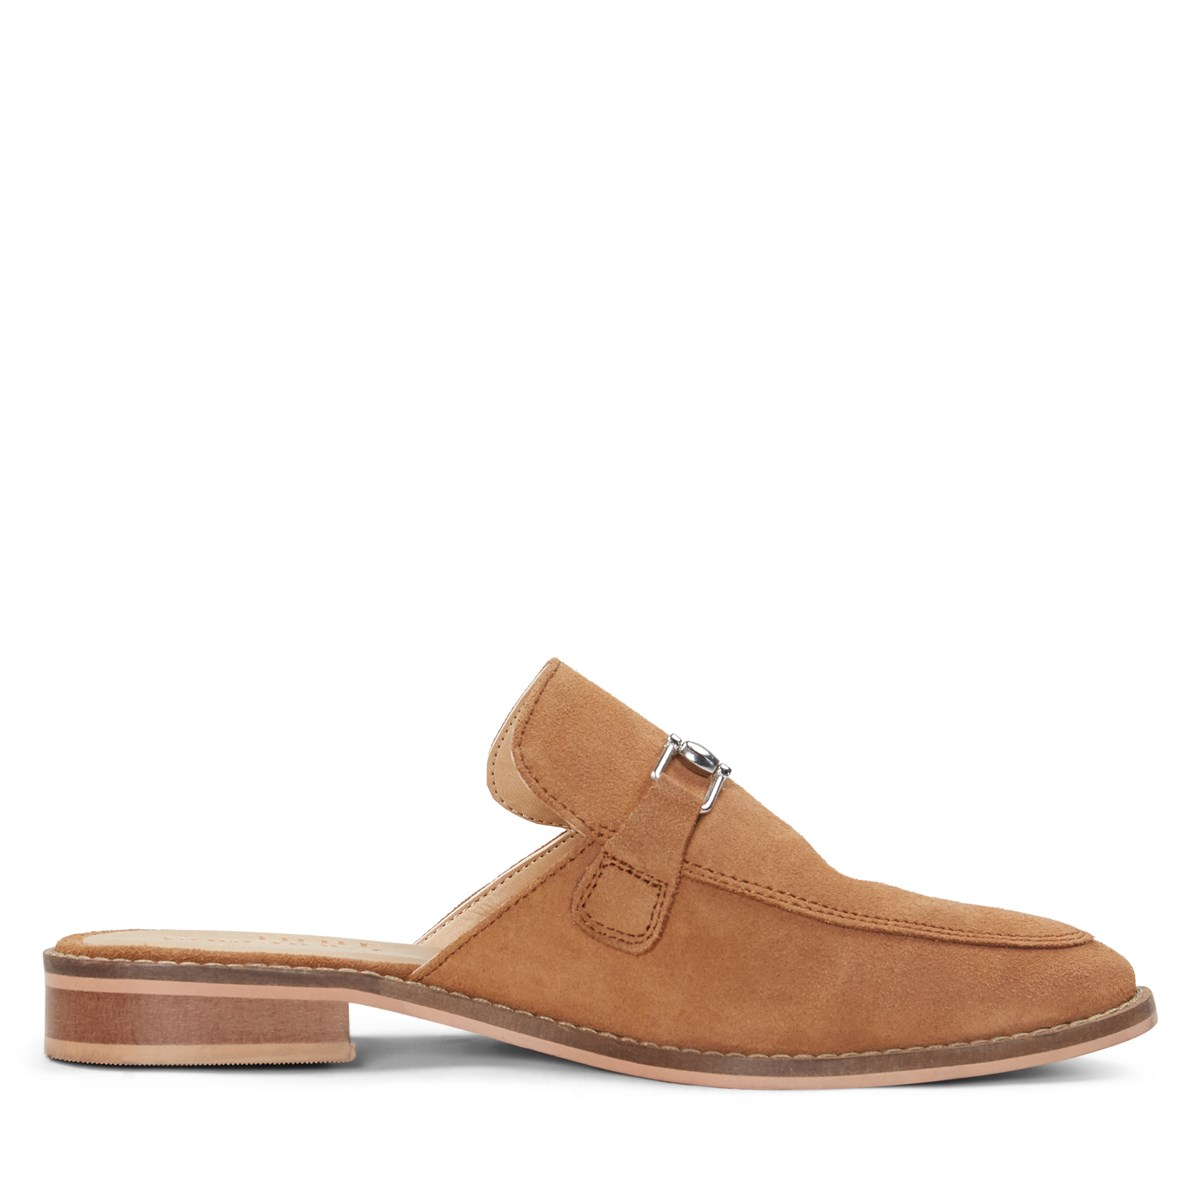 Women's Gigi Slip-On Shoe in Cognac